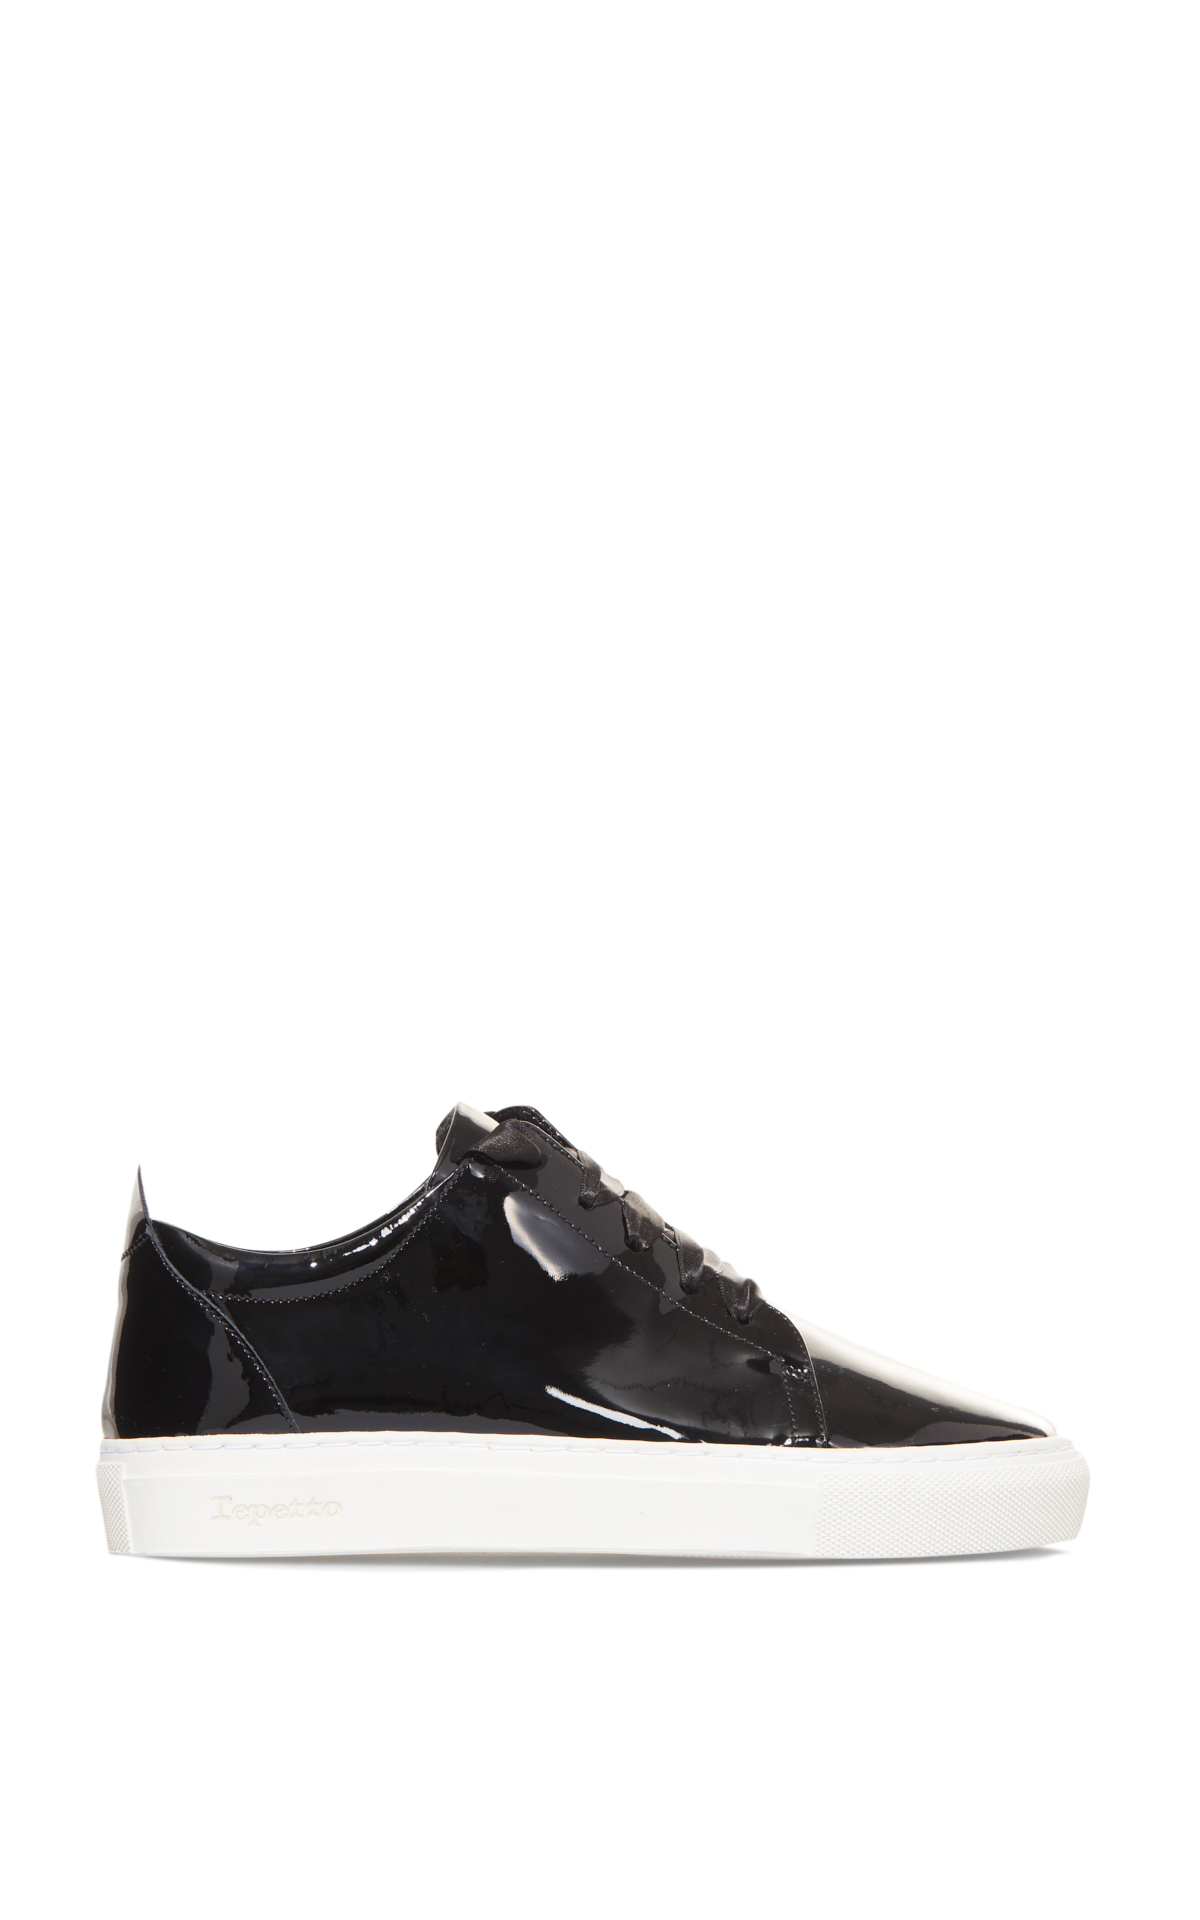 La Vallée Village Repetto Black patent leather sneakers